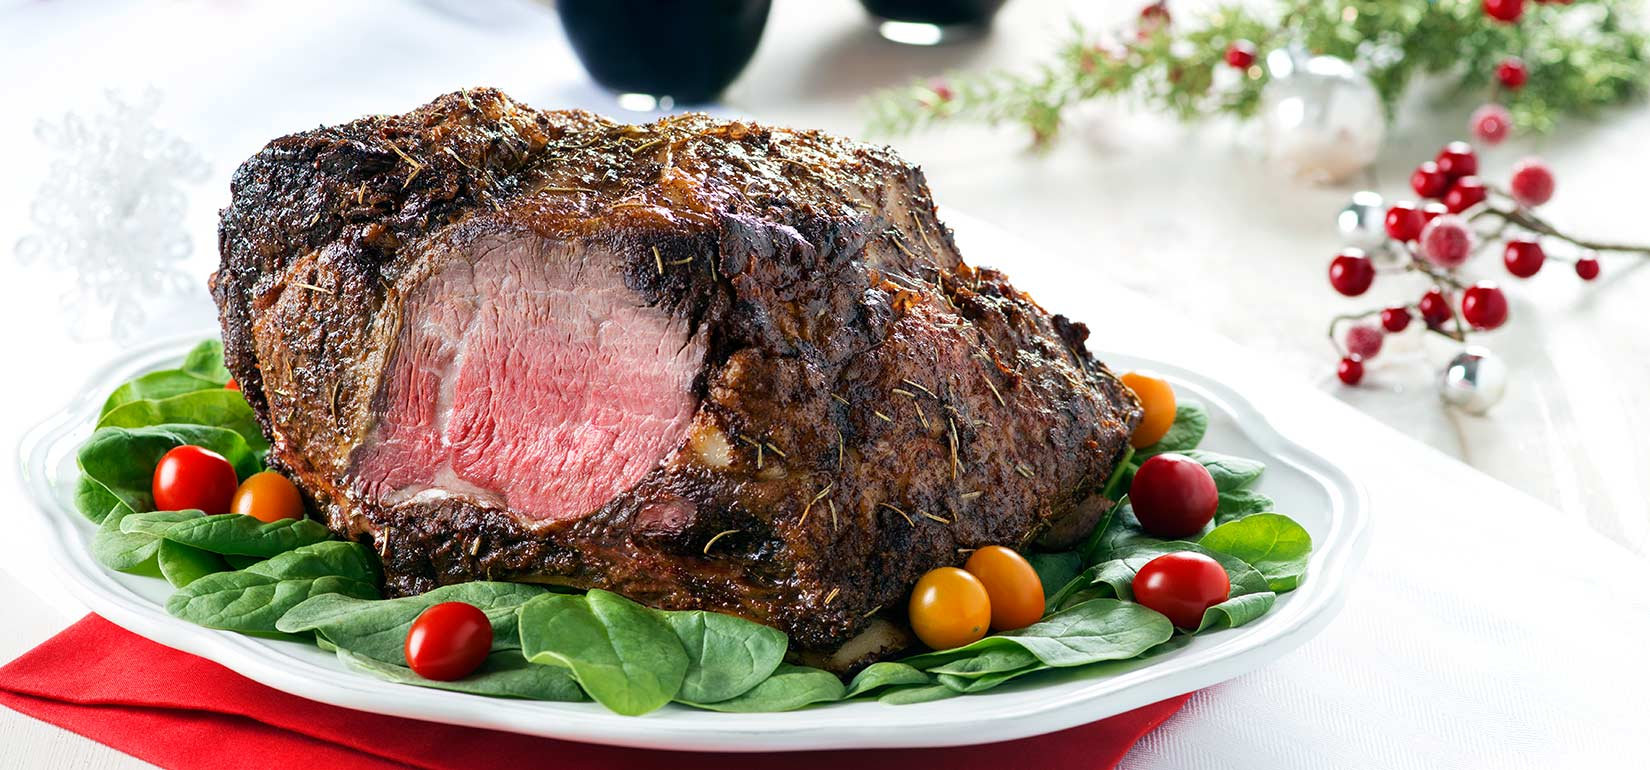 Organic Garlic and Sea Salt Rubbed Prime Rib | Prime Rib Recipes That Will Make Your Mouth Water | Slow Cooker Prime Rib